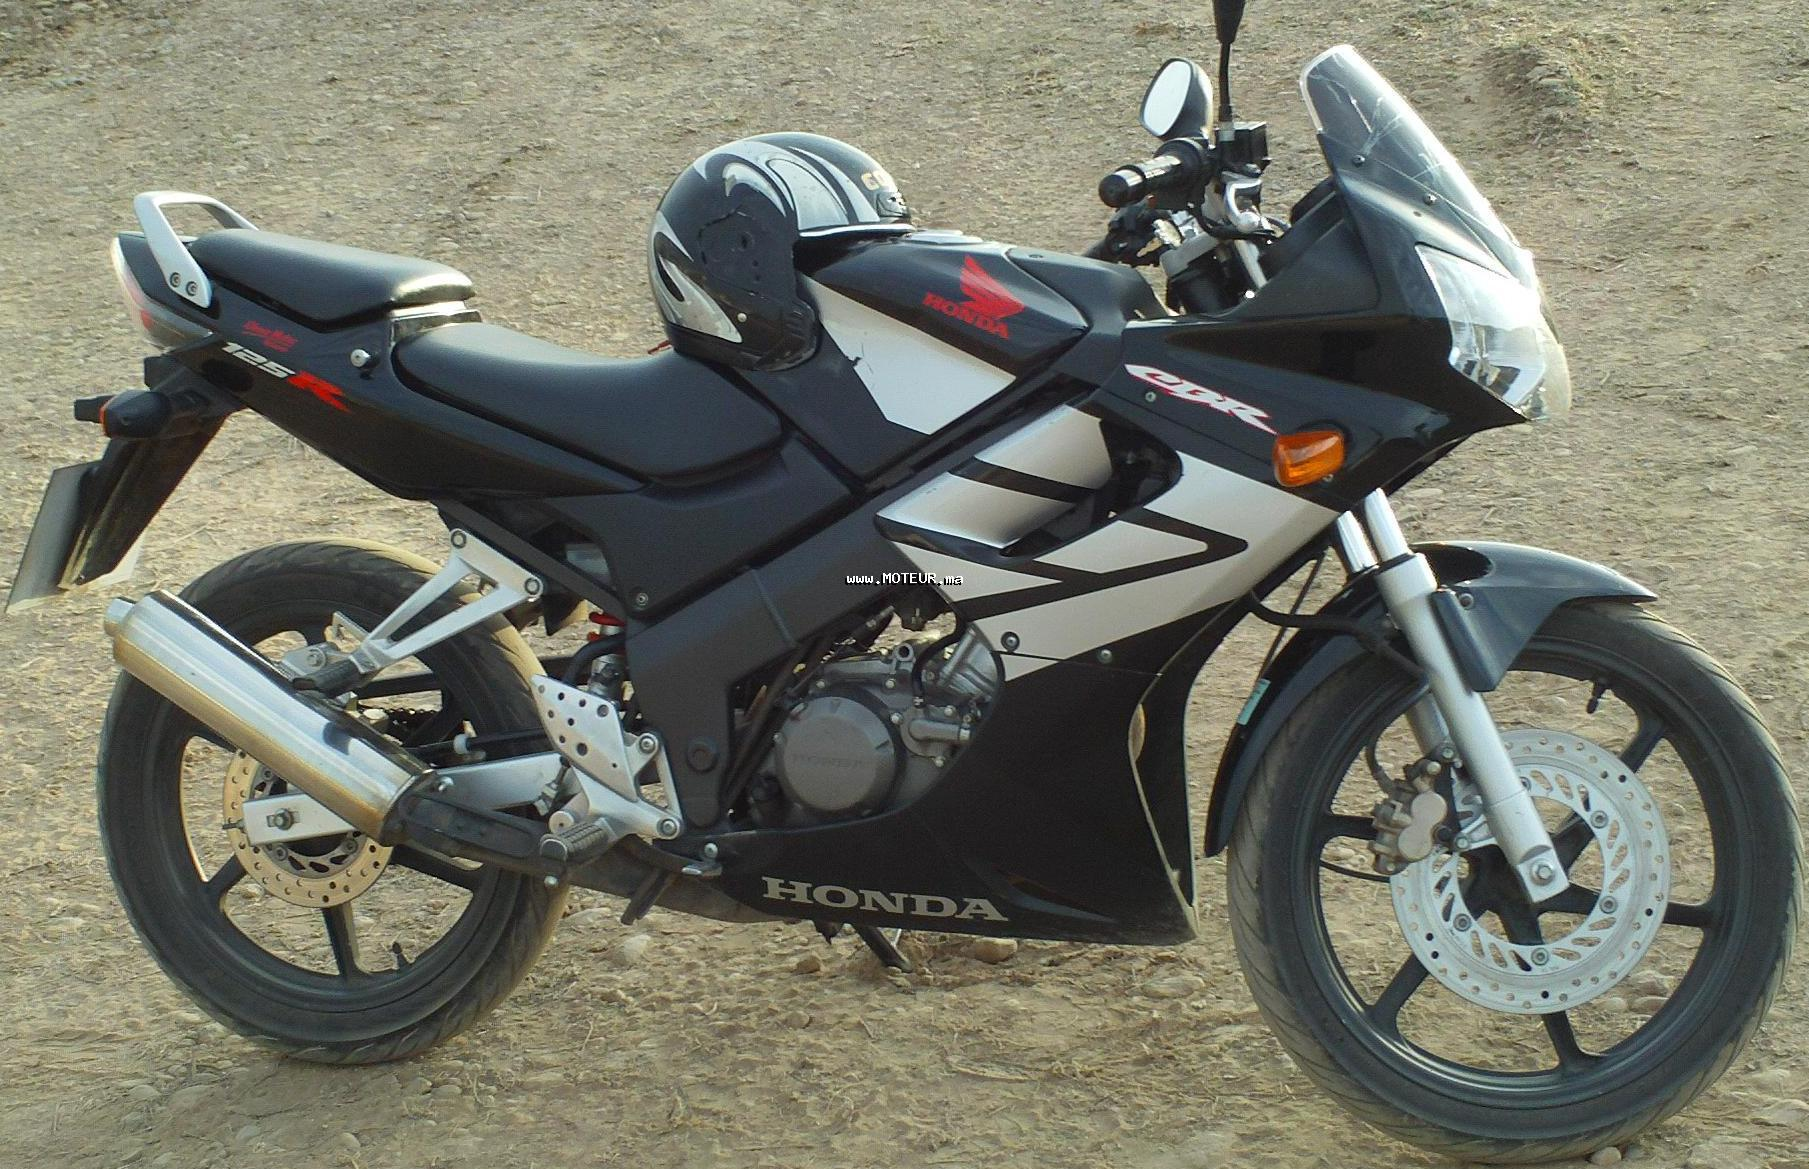 2007 honda cbr 125 r pics specs and information. Black Bedroom Furniture Sets. Home Design Ideas